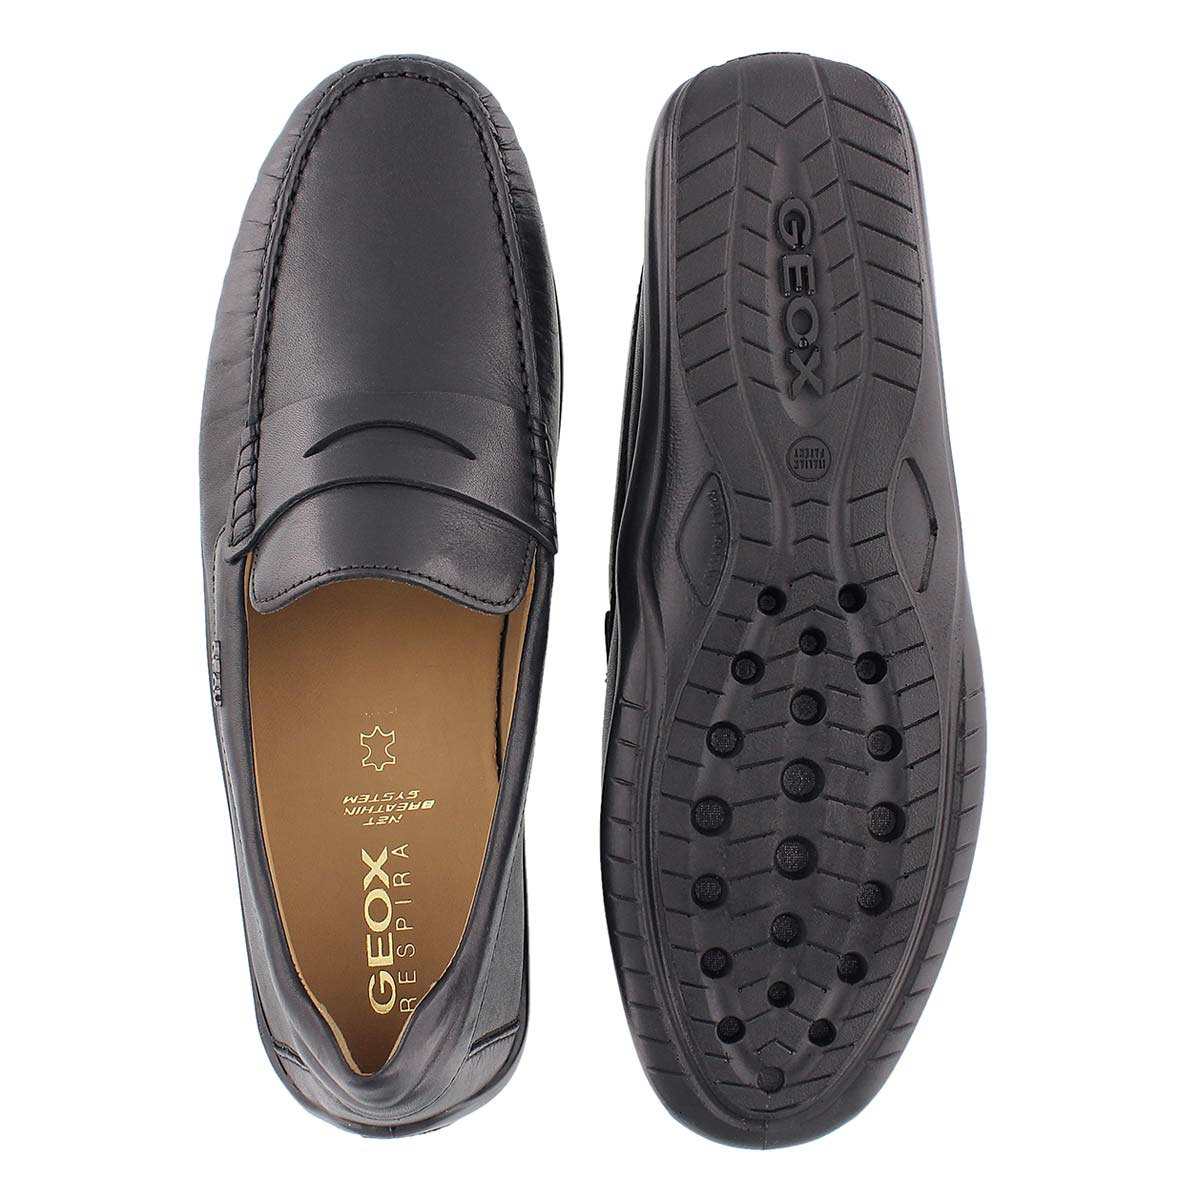 Mns Xense Mox black leather loafer